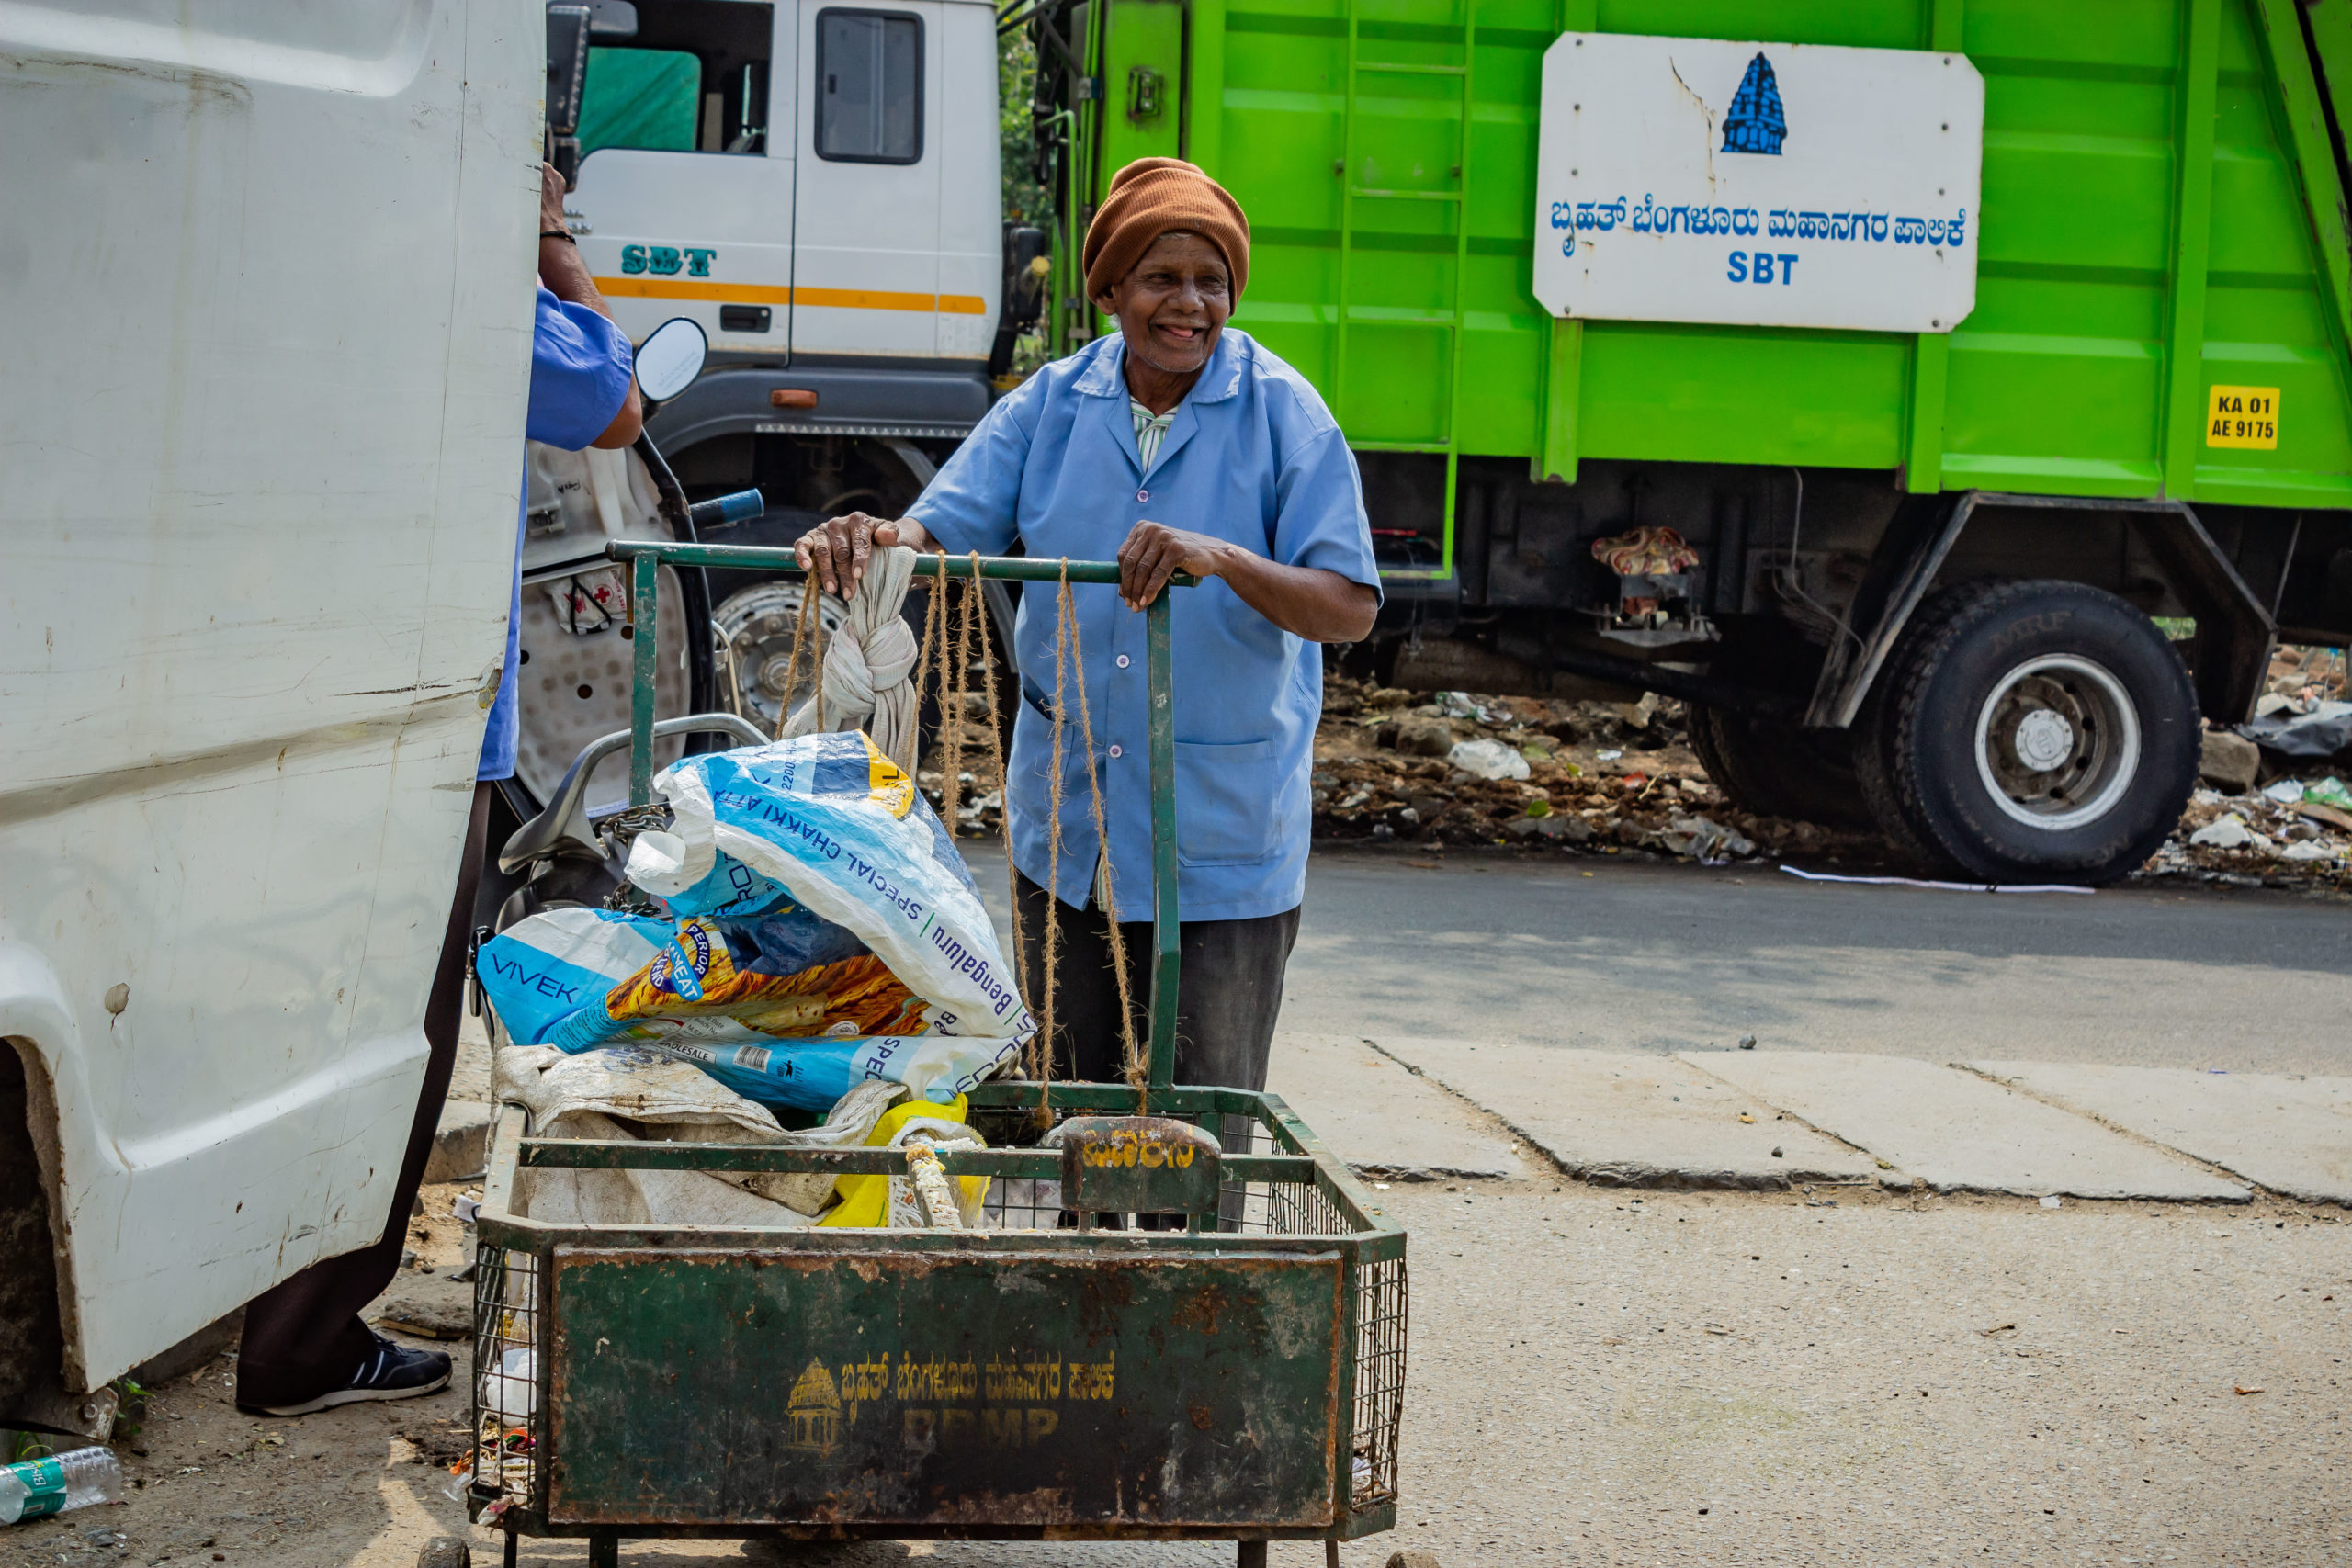 Manipal Hospital fined for violating waste management rules